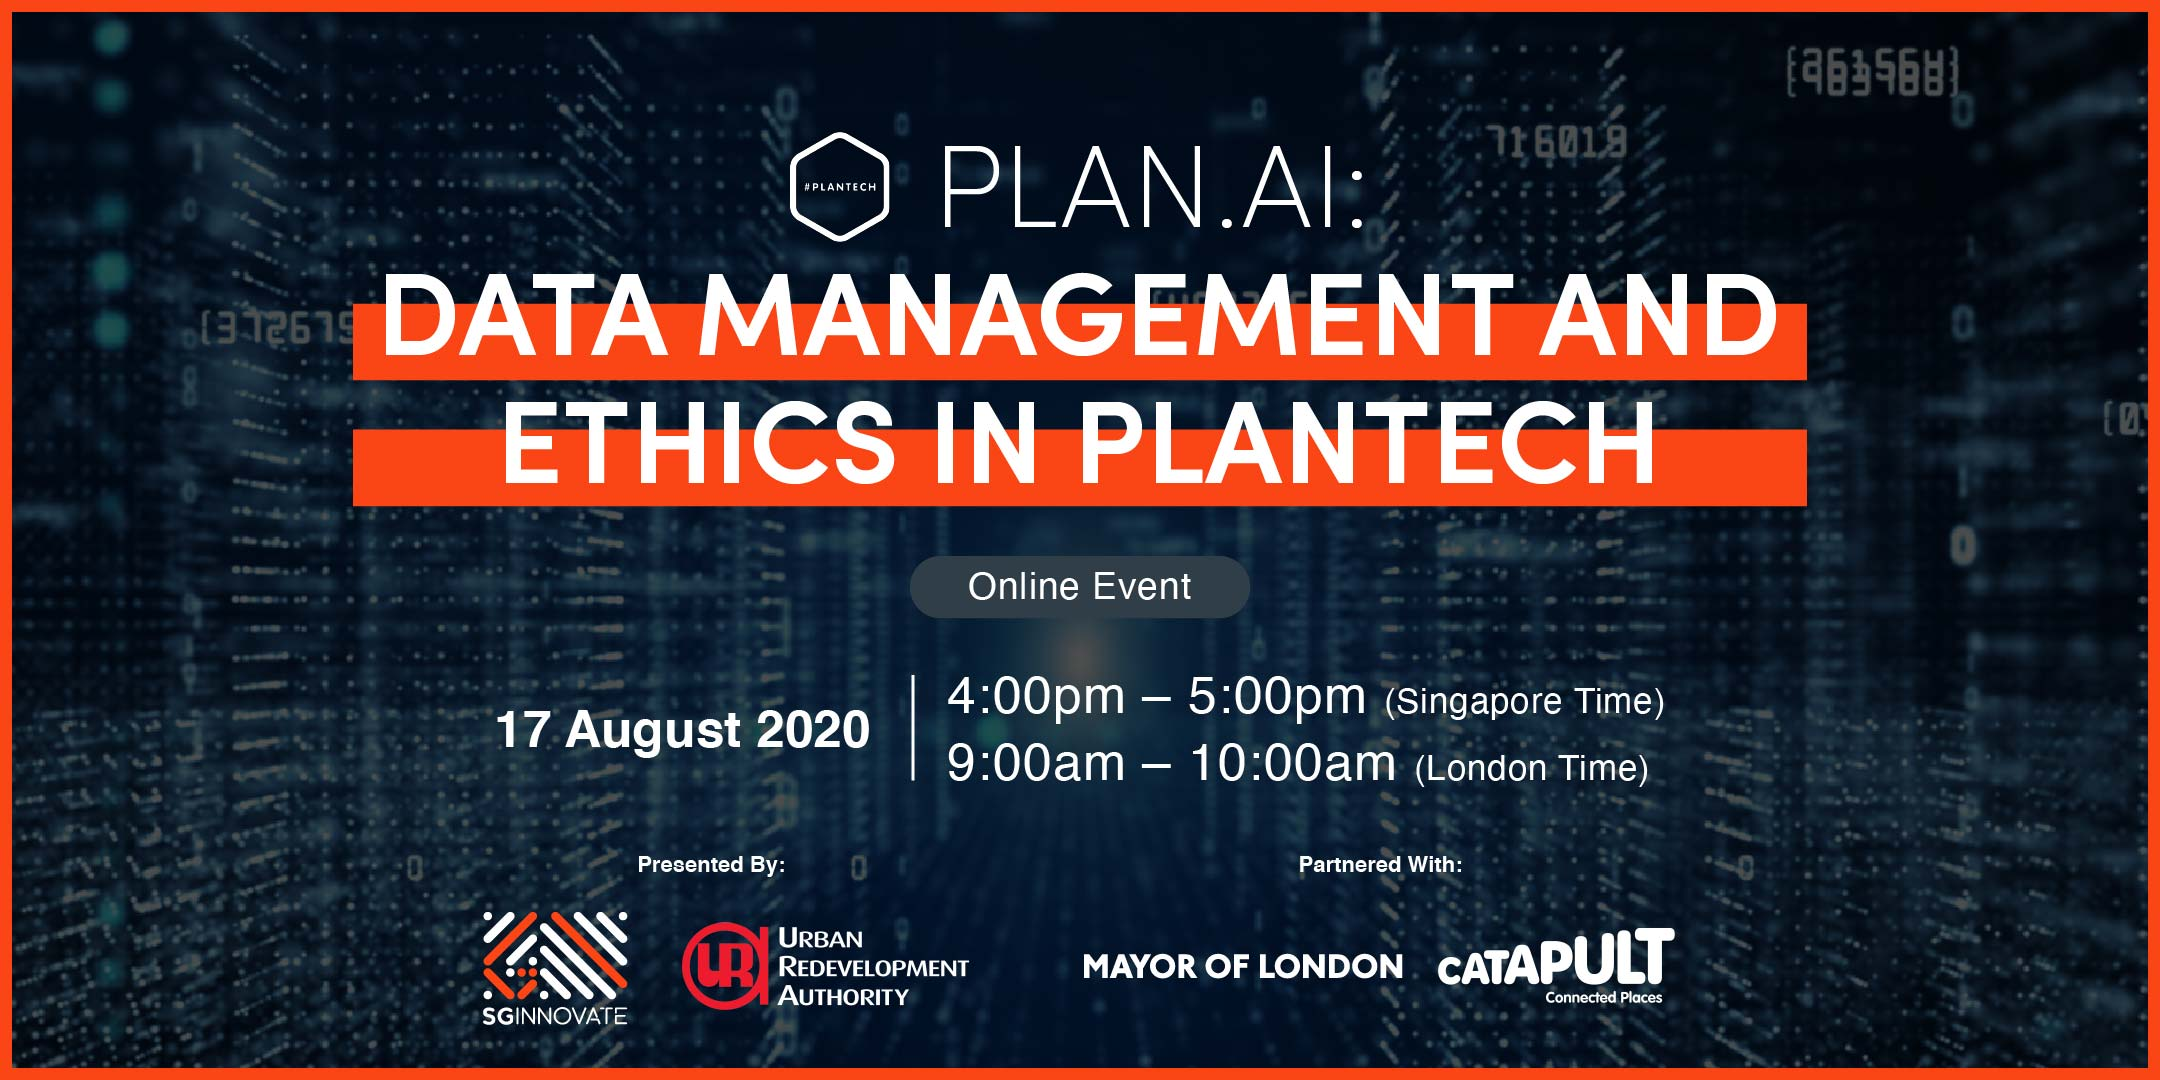 Data Management and Ethics in PlanTech